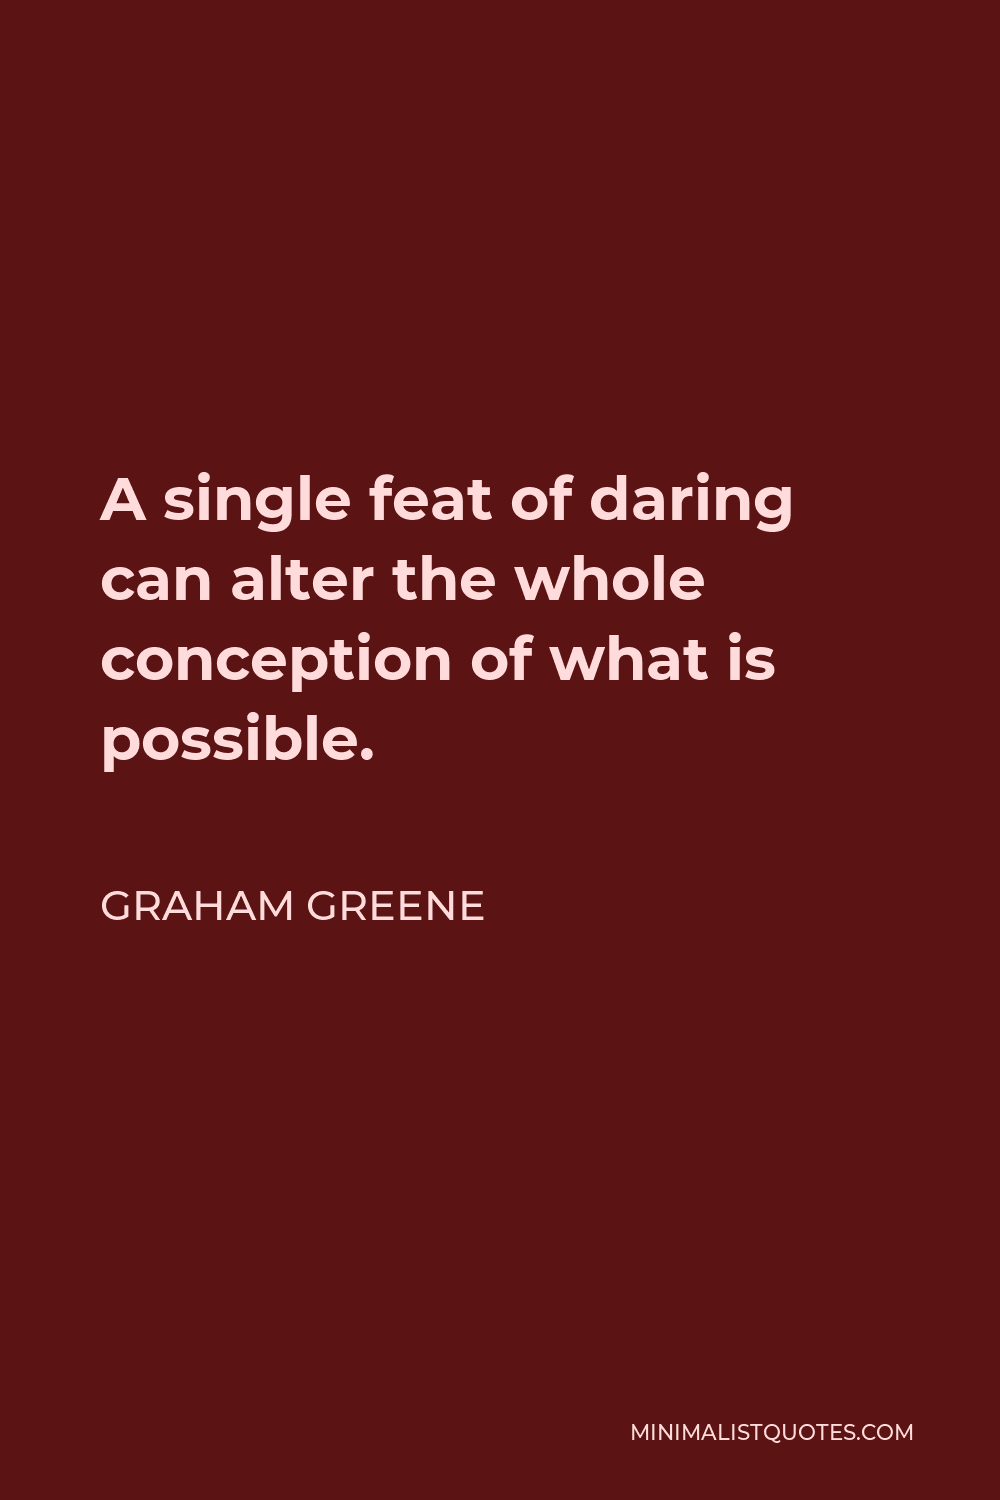 Graham Greene Quote - A single feat of daring can alter the whole conception of what is possible.